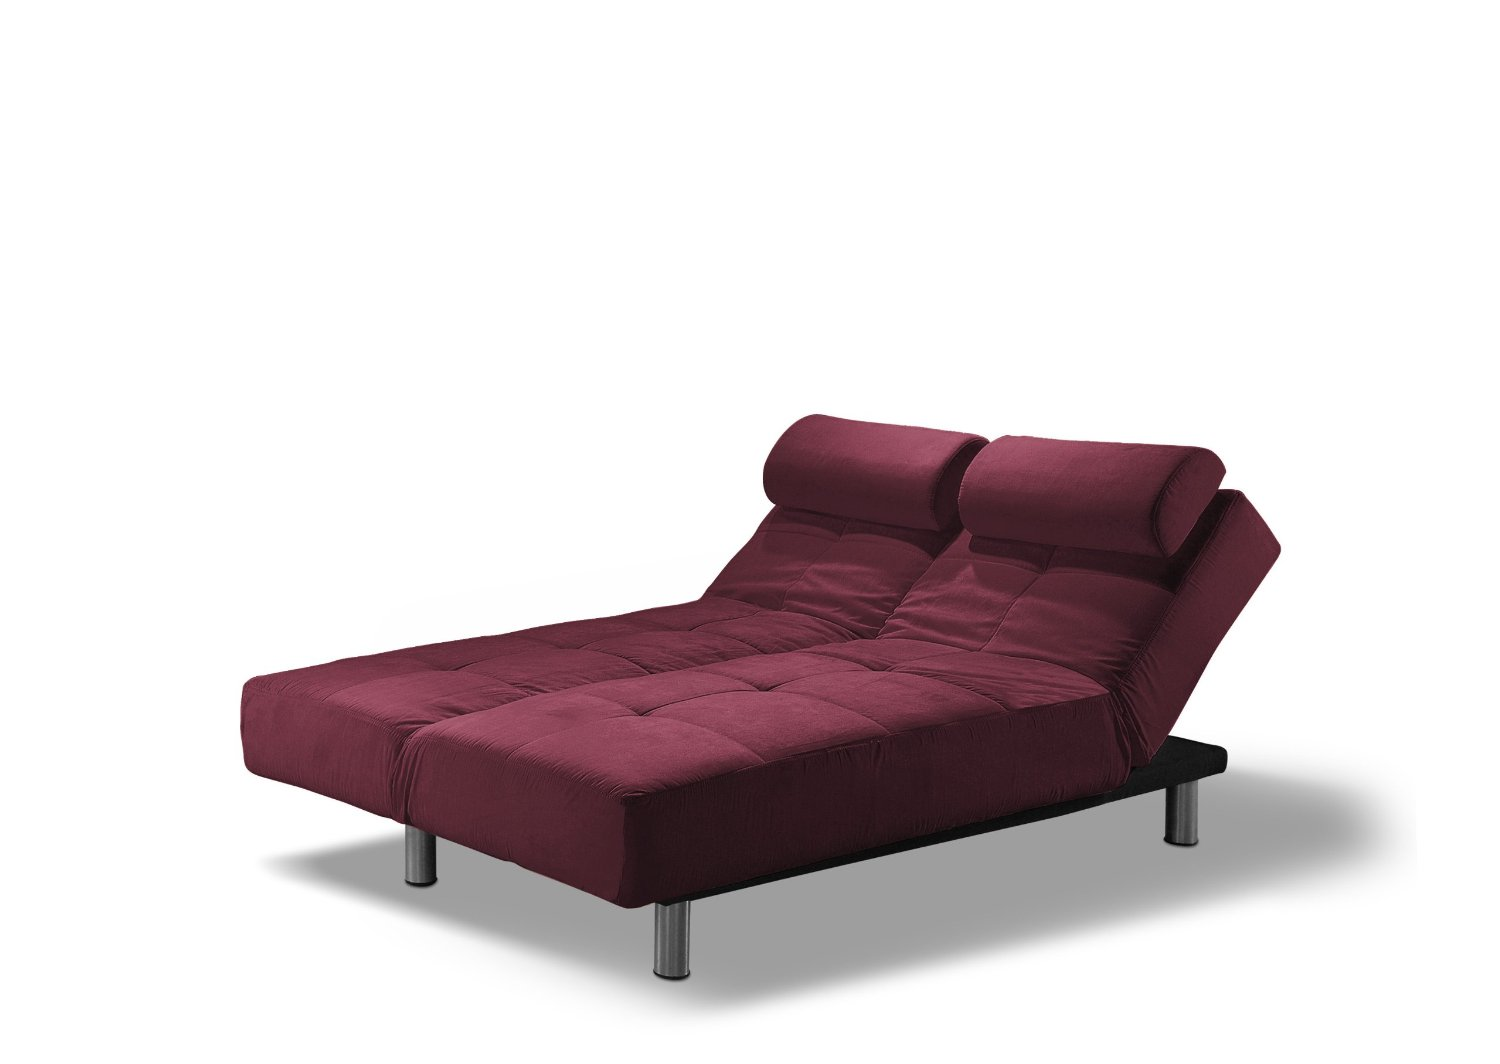 Flip Amp Fold Flat Convertible Sofa Bed Couches